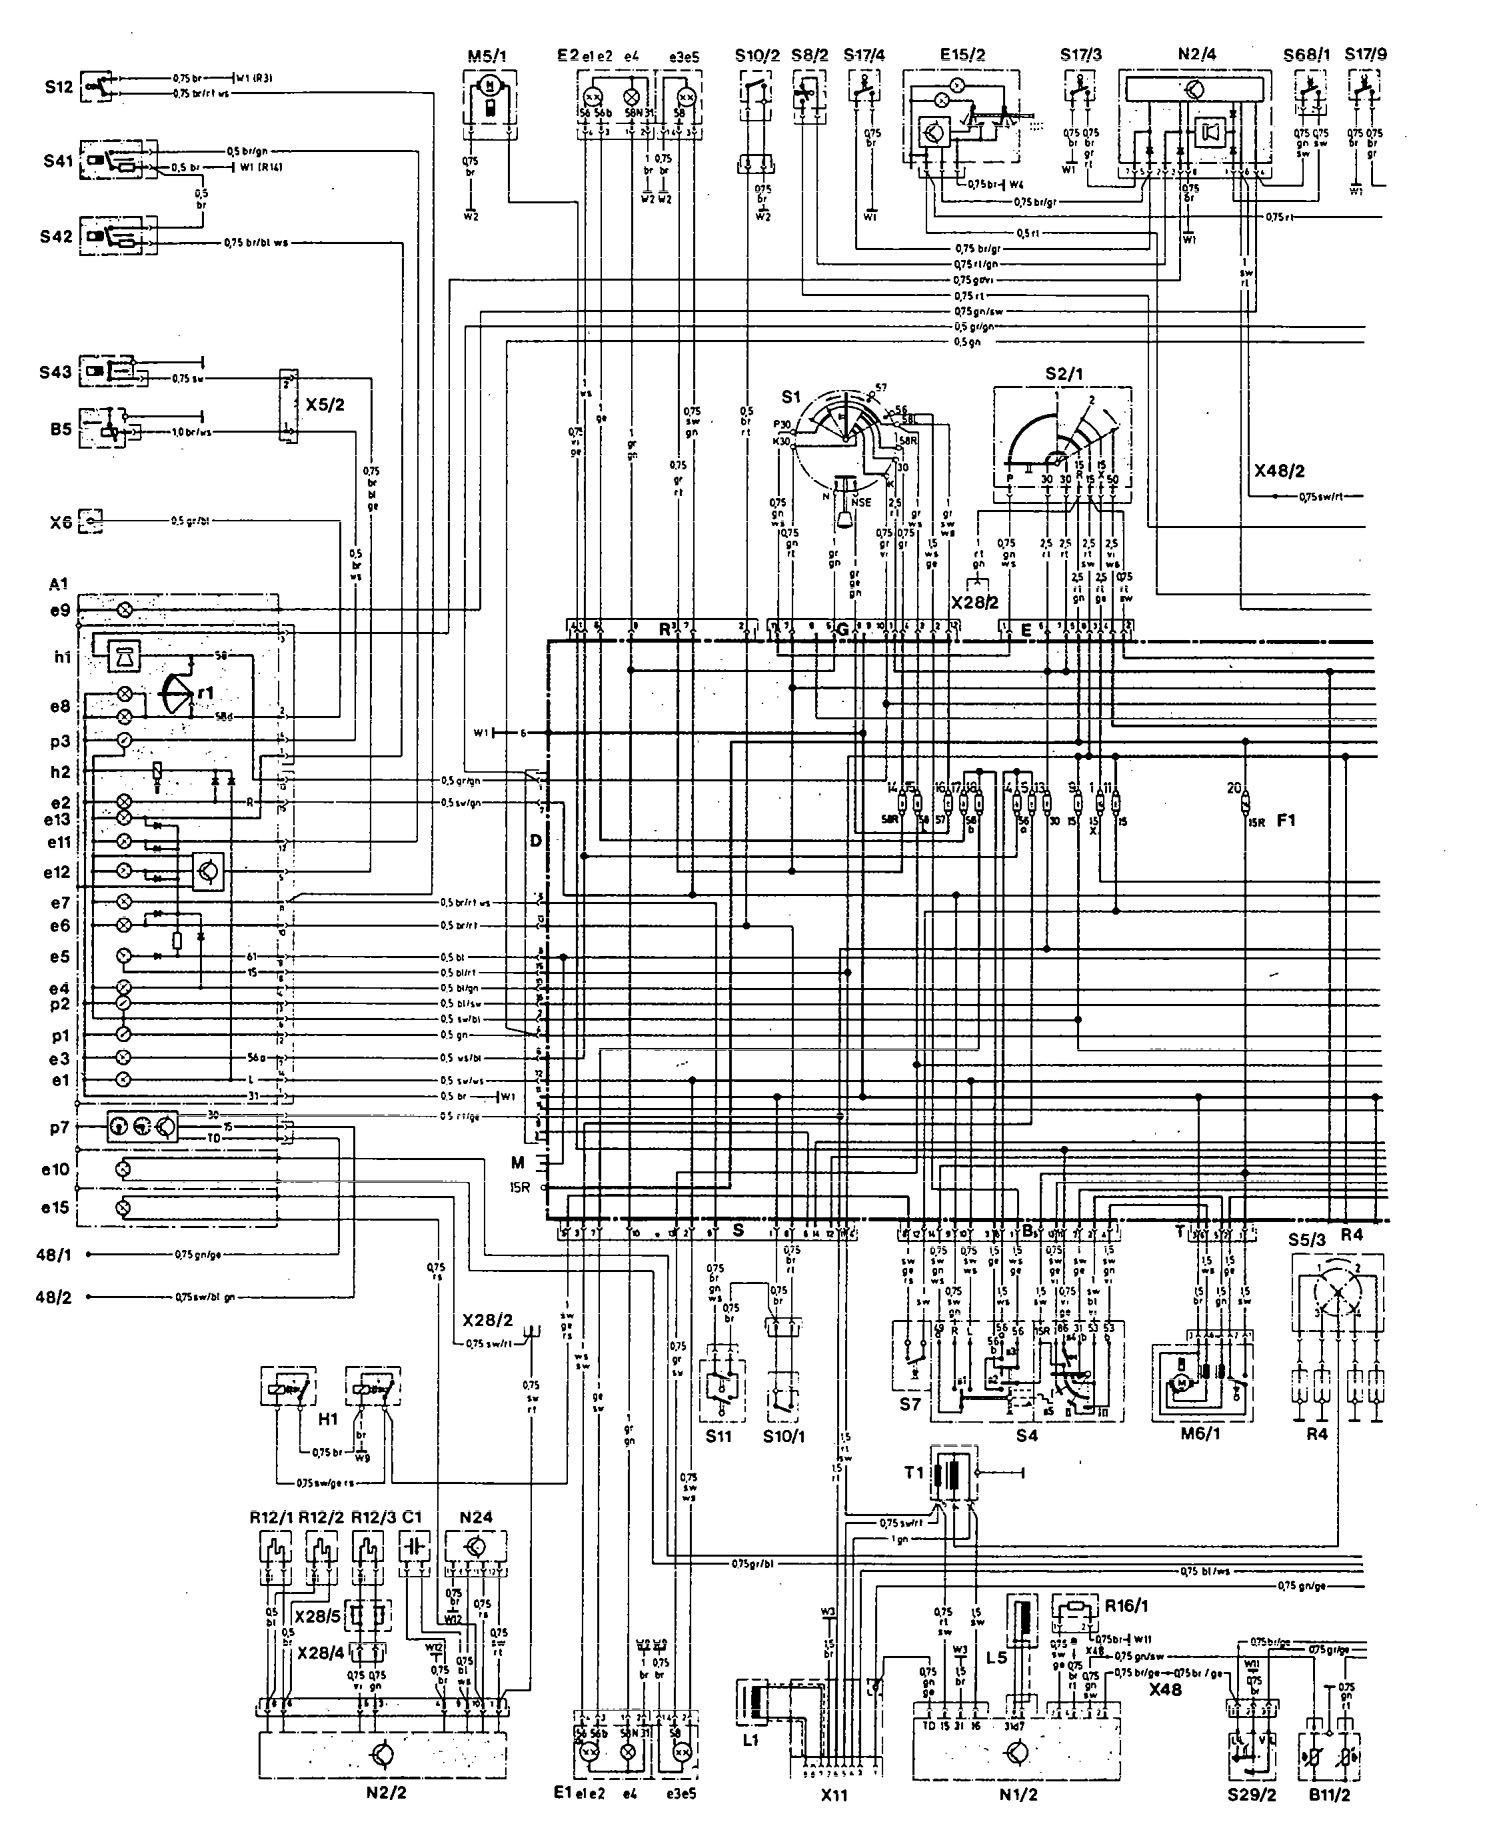 Mercedes 190e  1992  - Wiring Diagrams